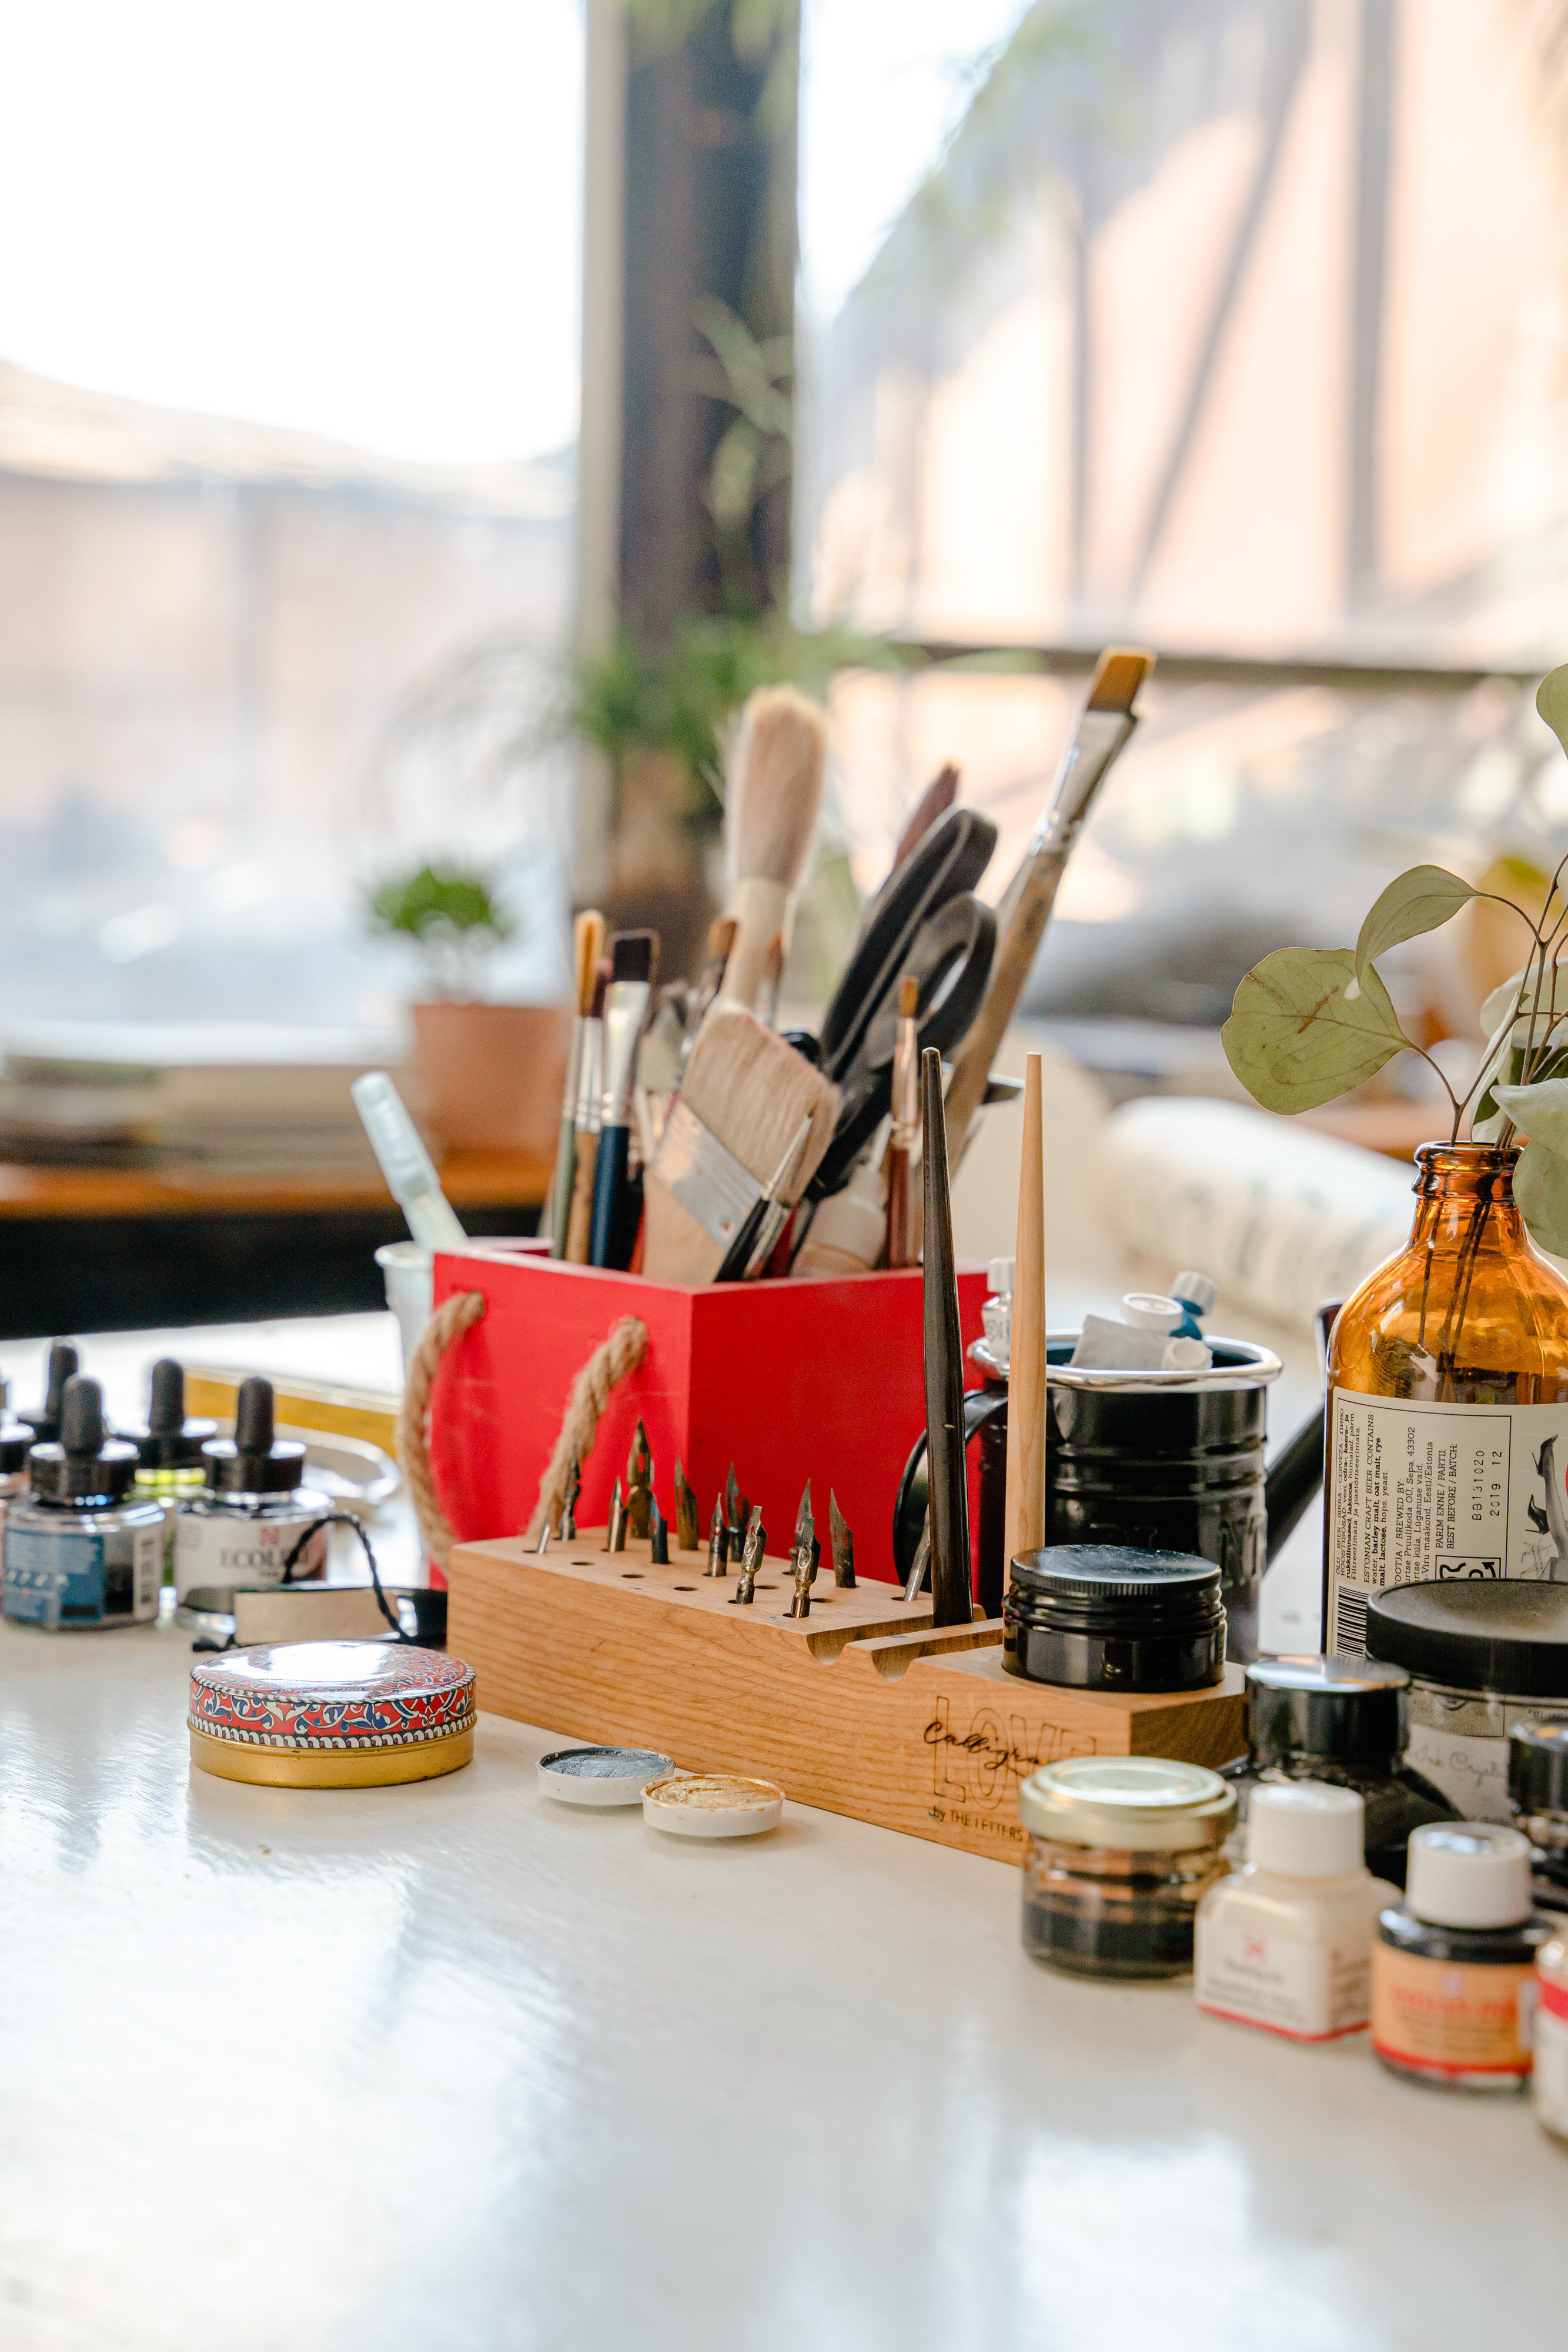 6 Essentials for Every Artist's Toolkit